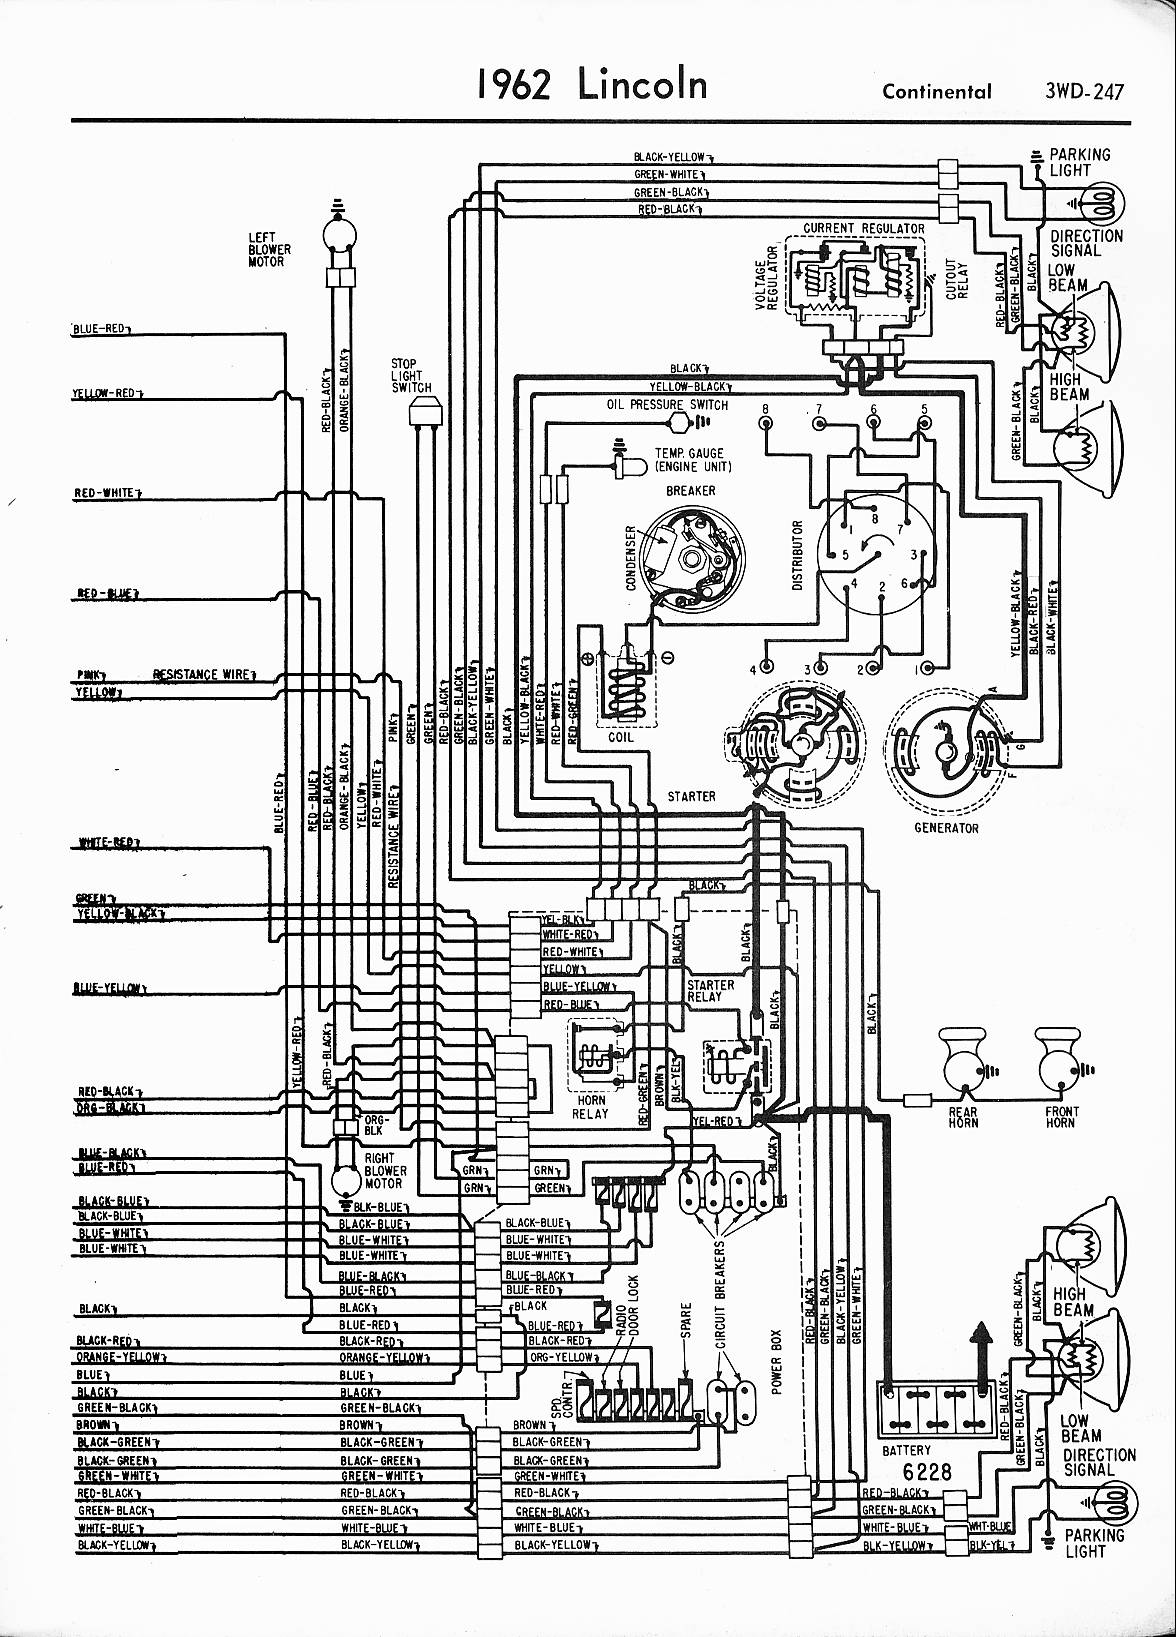 hight resolution of lincoln wiring diagrams 1957 1965 lincoln ls seat wiring diagram 1996 lincoln continental power window wiring diagram